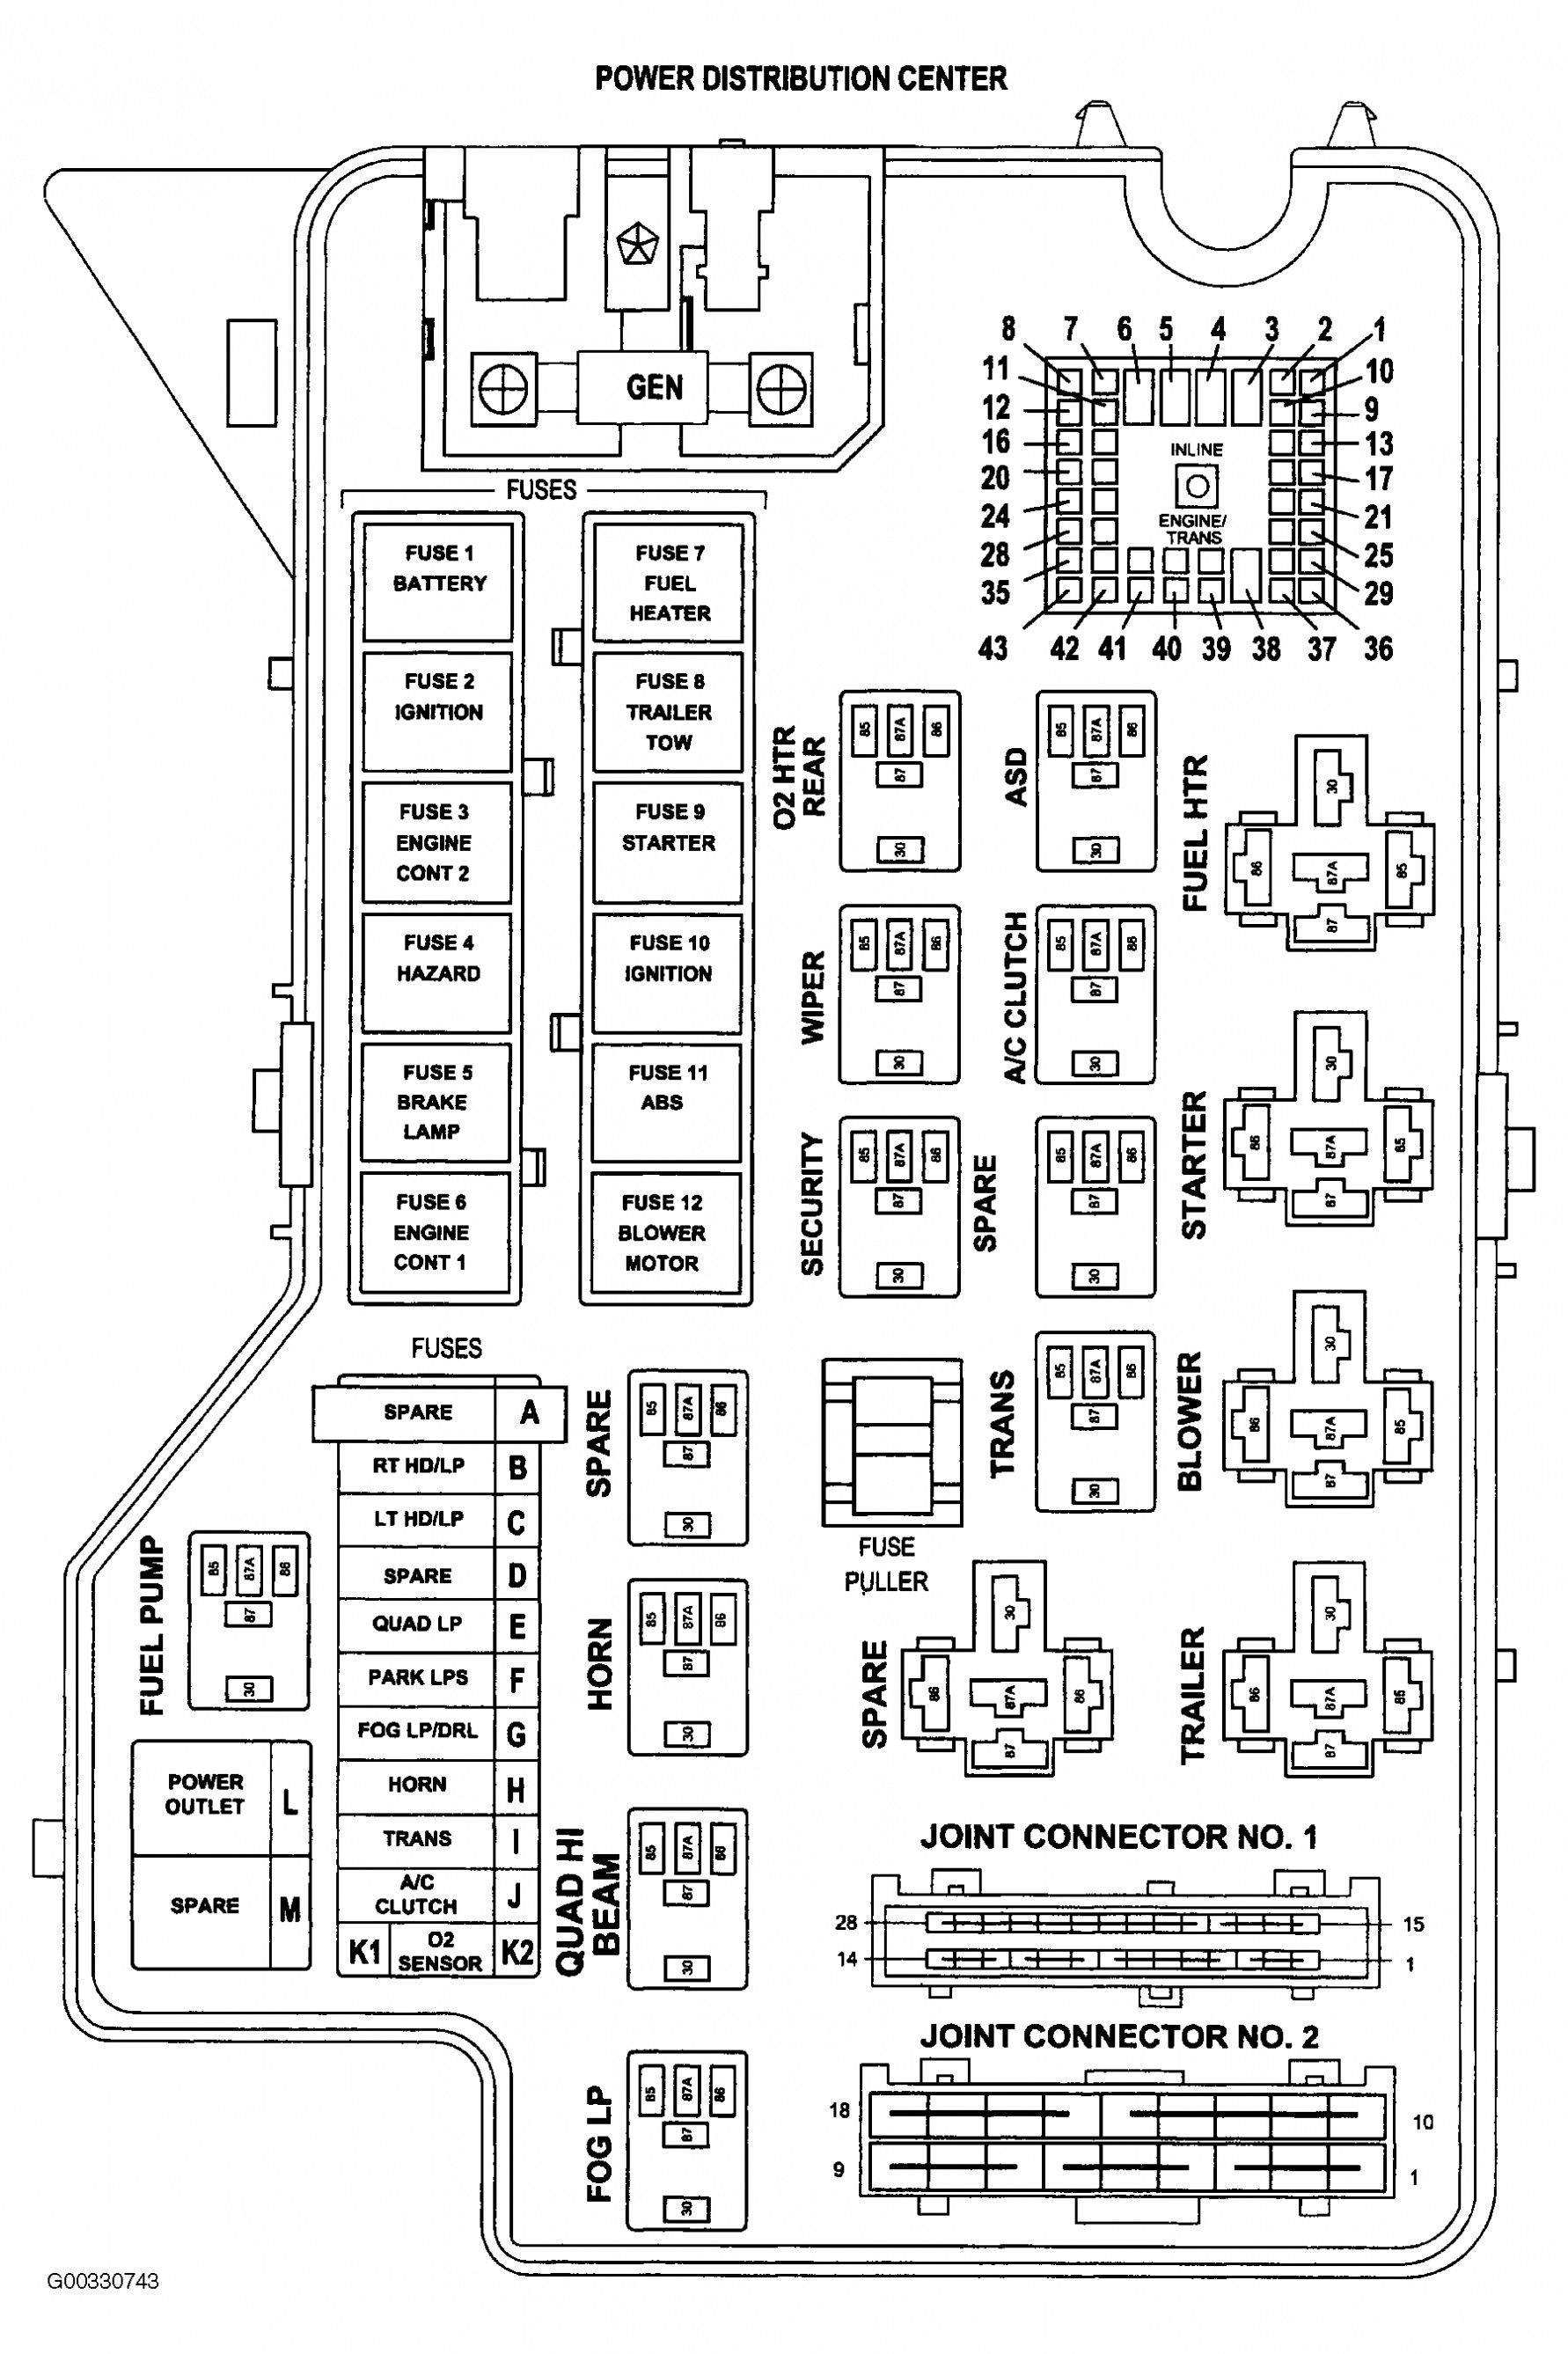 New Wiring Diagram For Dodge Ram Radio Diagram